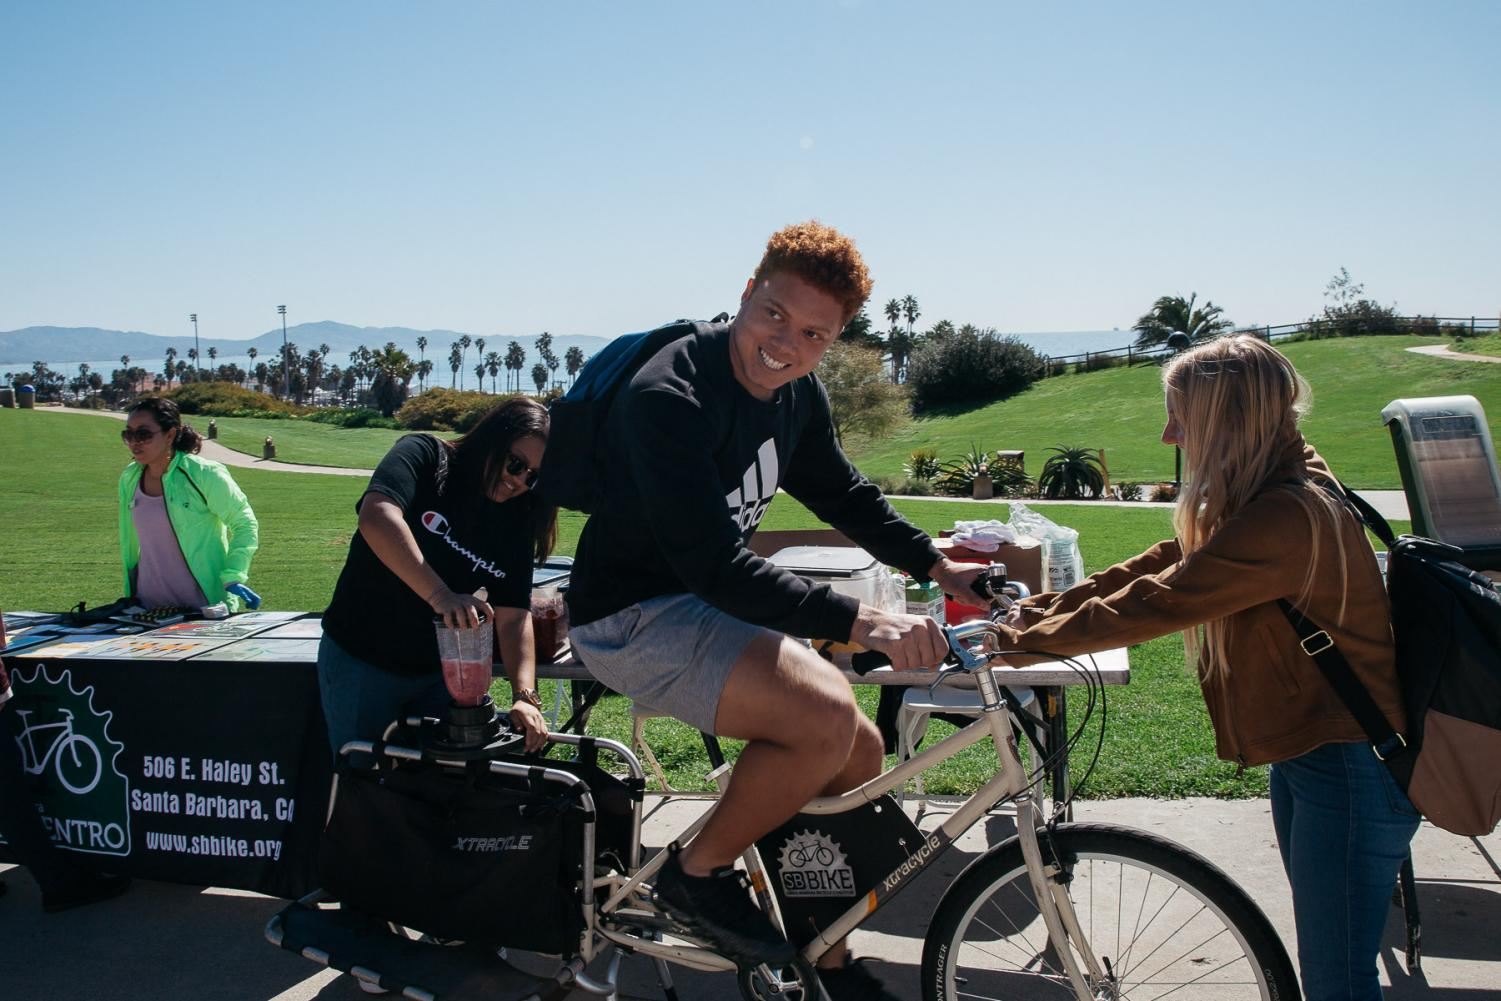 Isaac Brown pedals a blender bike to make an energy efficient smoothie during sustainability day on Thursday, March 14, 2019 on West Campus at City College in Santa Barbara, Calif. The bike, provided by Bici Centro, uses the power from pedaling to spin the blender blades and make free smoothies for students to encourage biking to burn less fossil fuels.